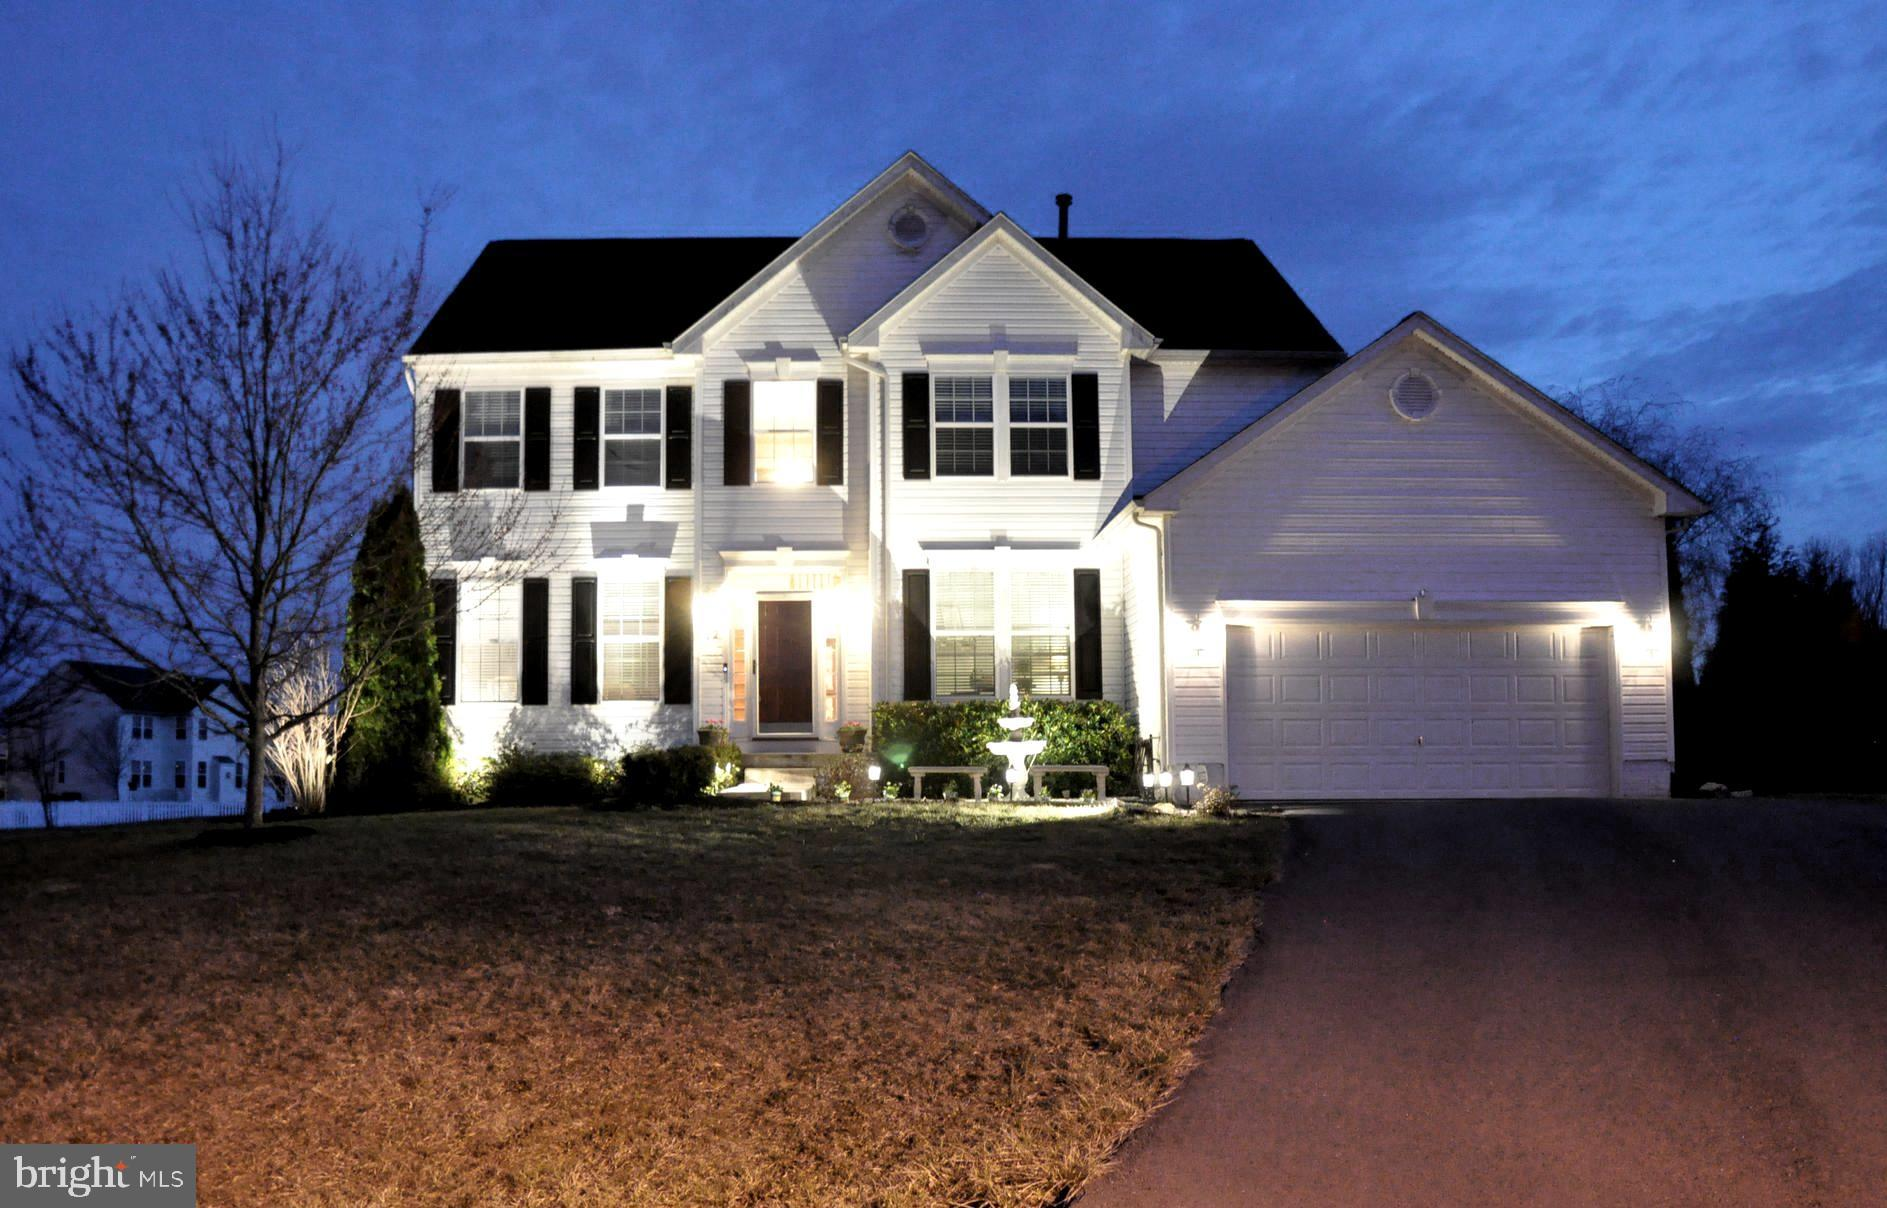 42 NORBECK DRIVE, BUNKER HILL, WV 25413